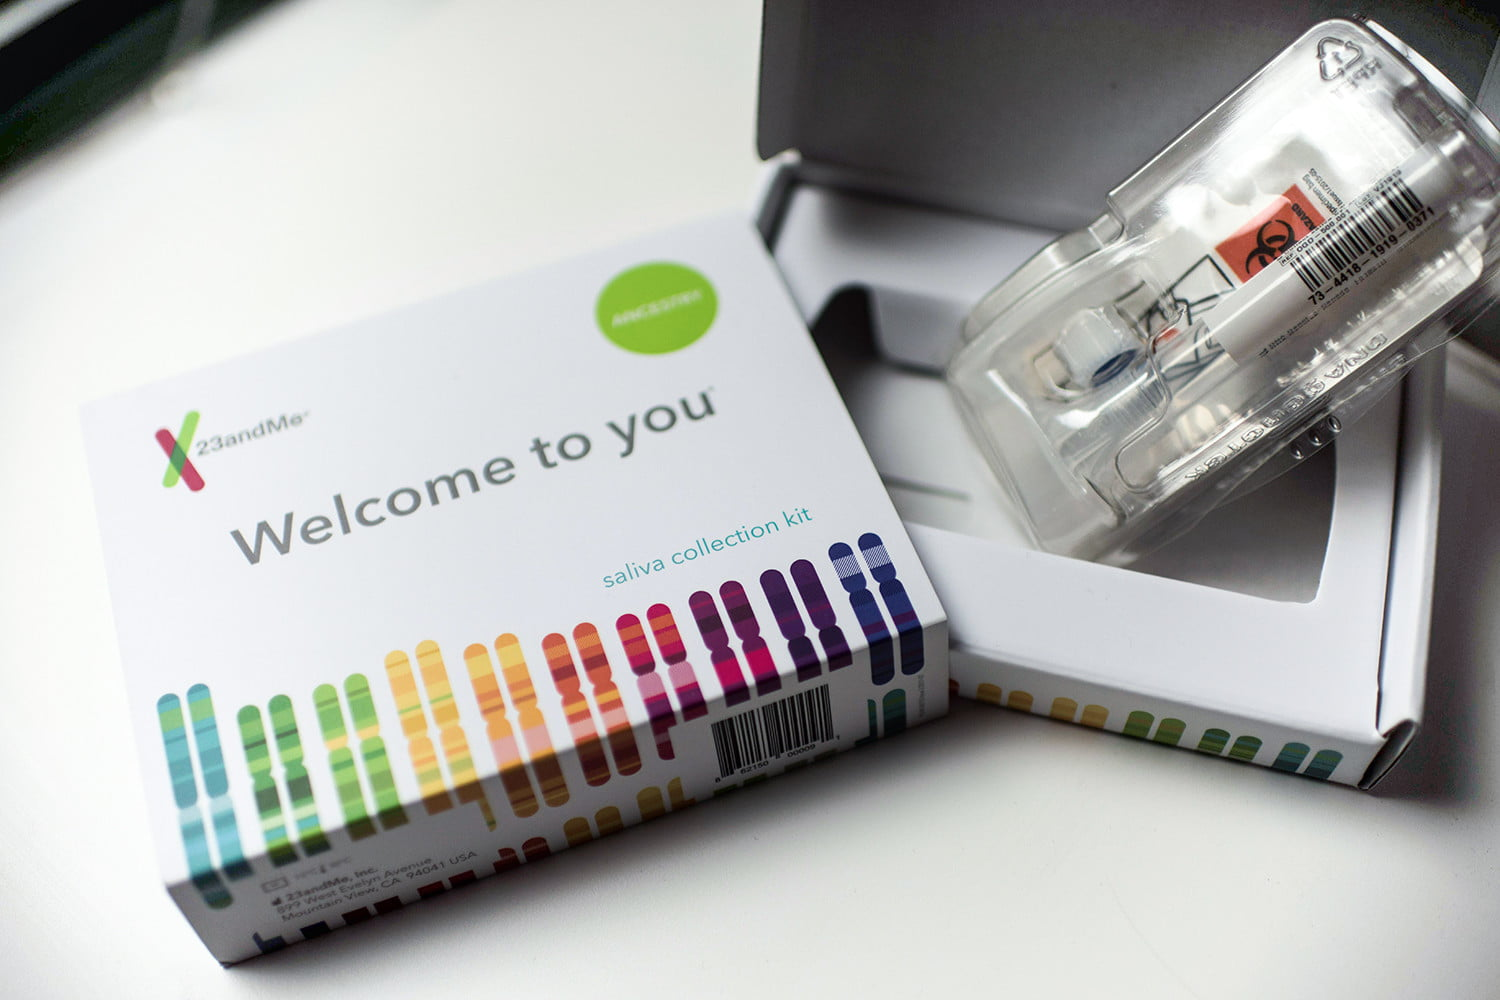 23andMe's new pharmaceutical partnership could finally find a fix for psoriasis